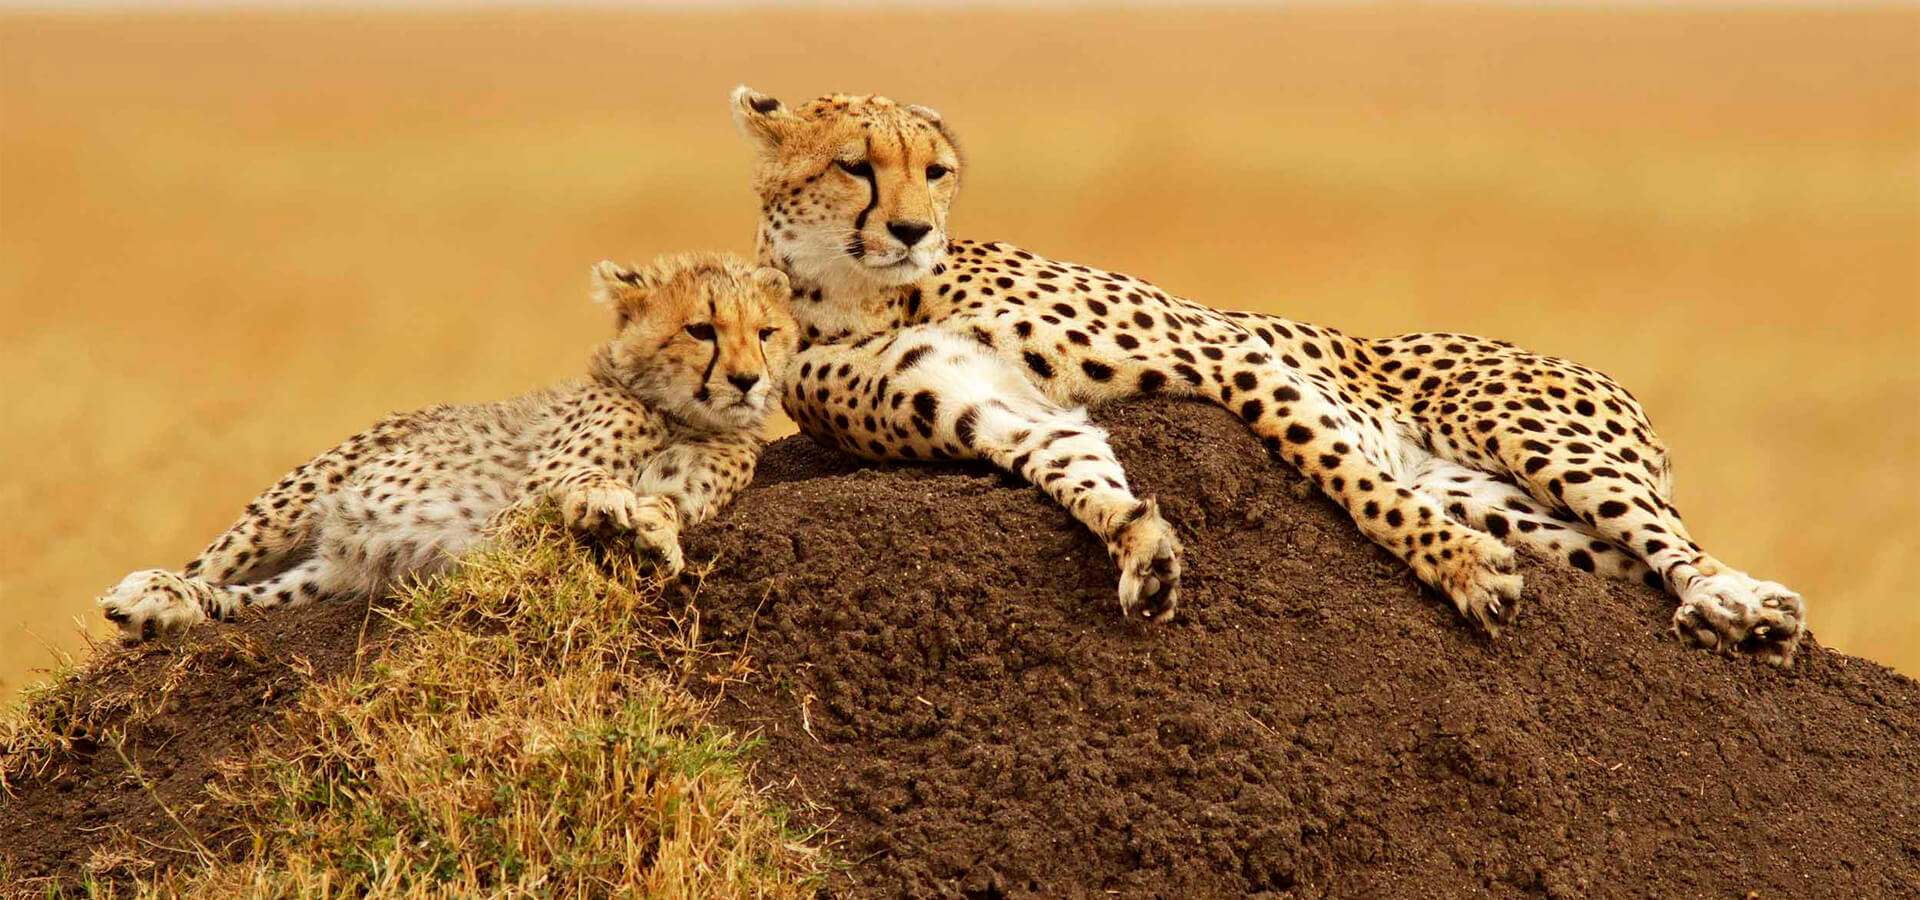 SAFARI EN SUDAFRICA x USD 1490